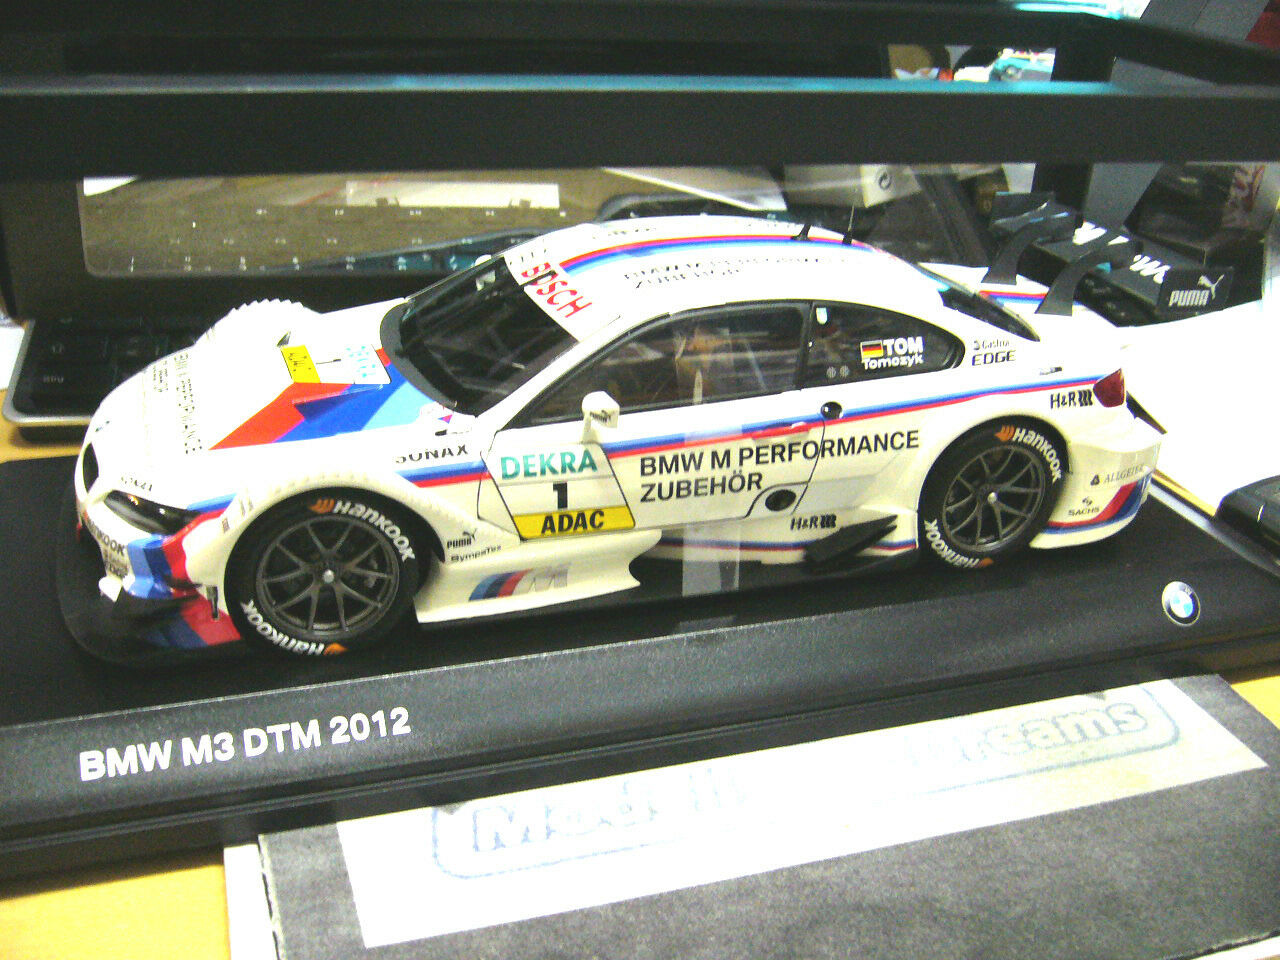 BMW m3 e92 COUPE DTM 2012 Tomczyk Team Reinhold marchandises  1 SP Minichamps 1 18 New